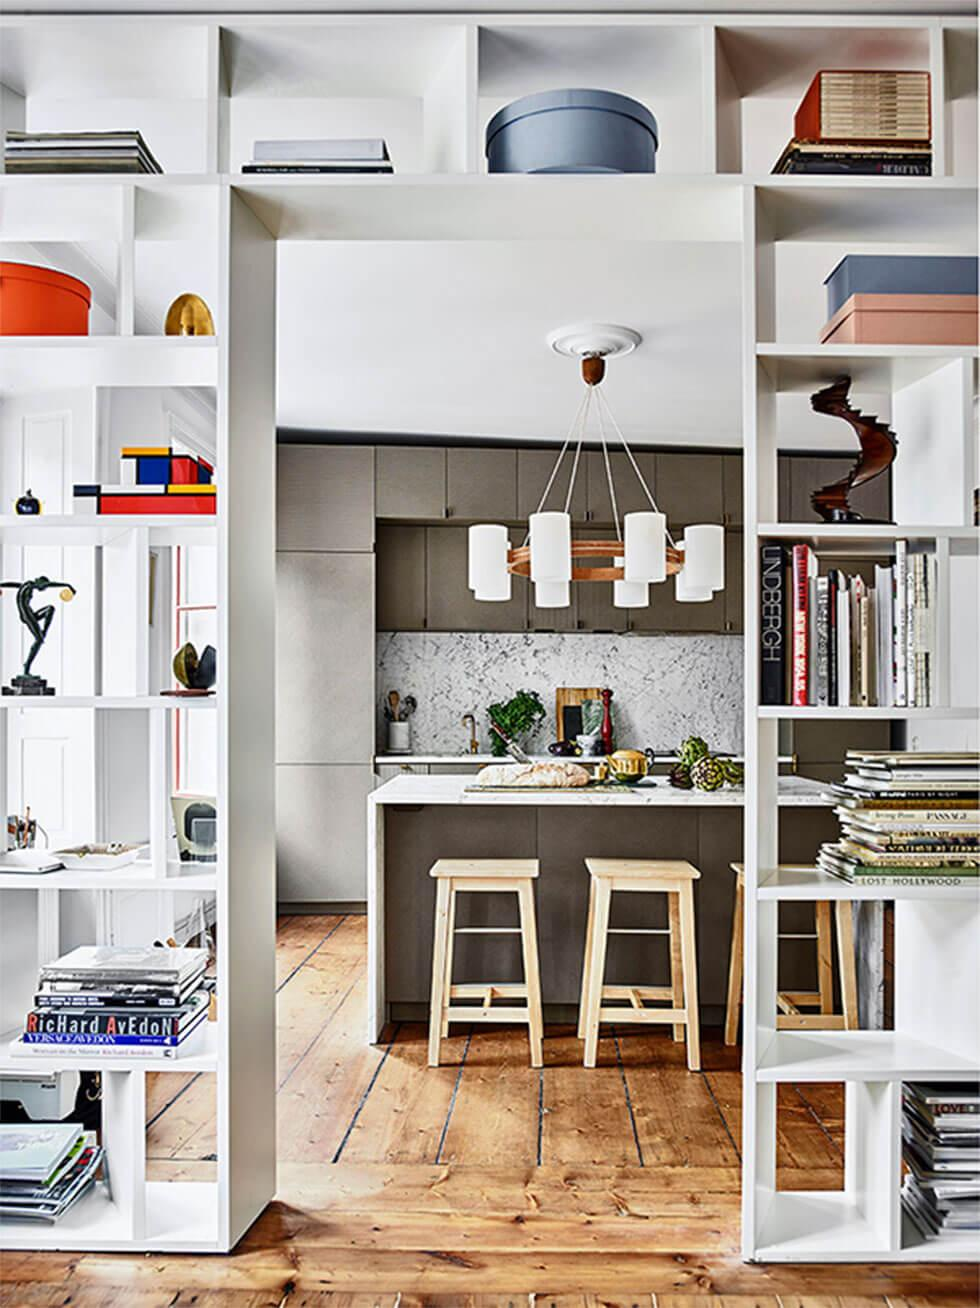 An airy open plan living space with white bookshelves dividing the room